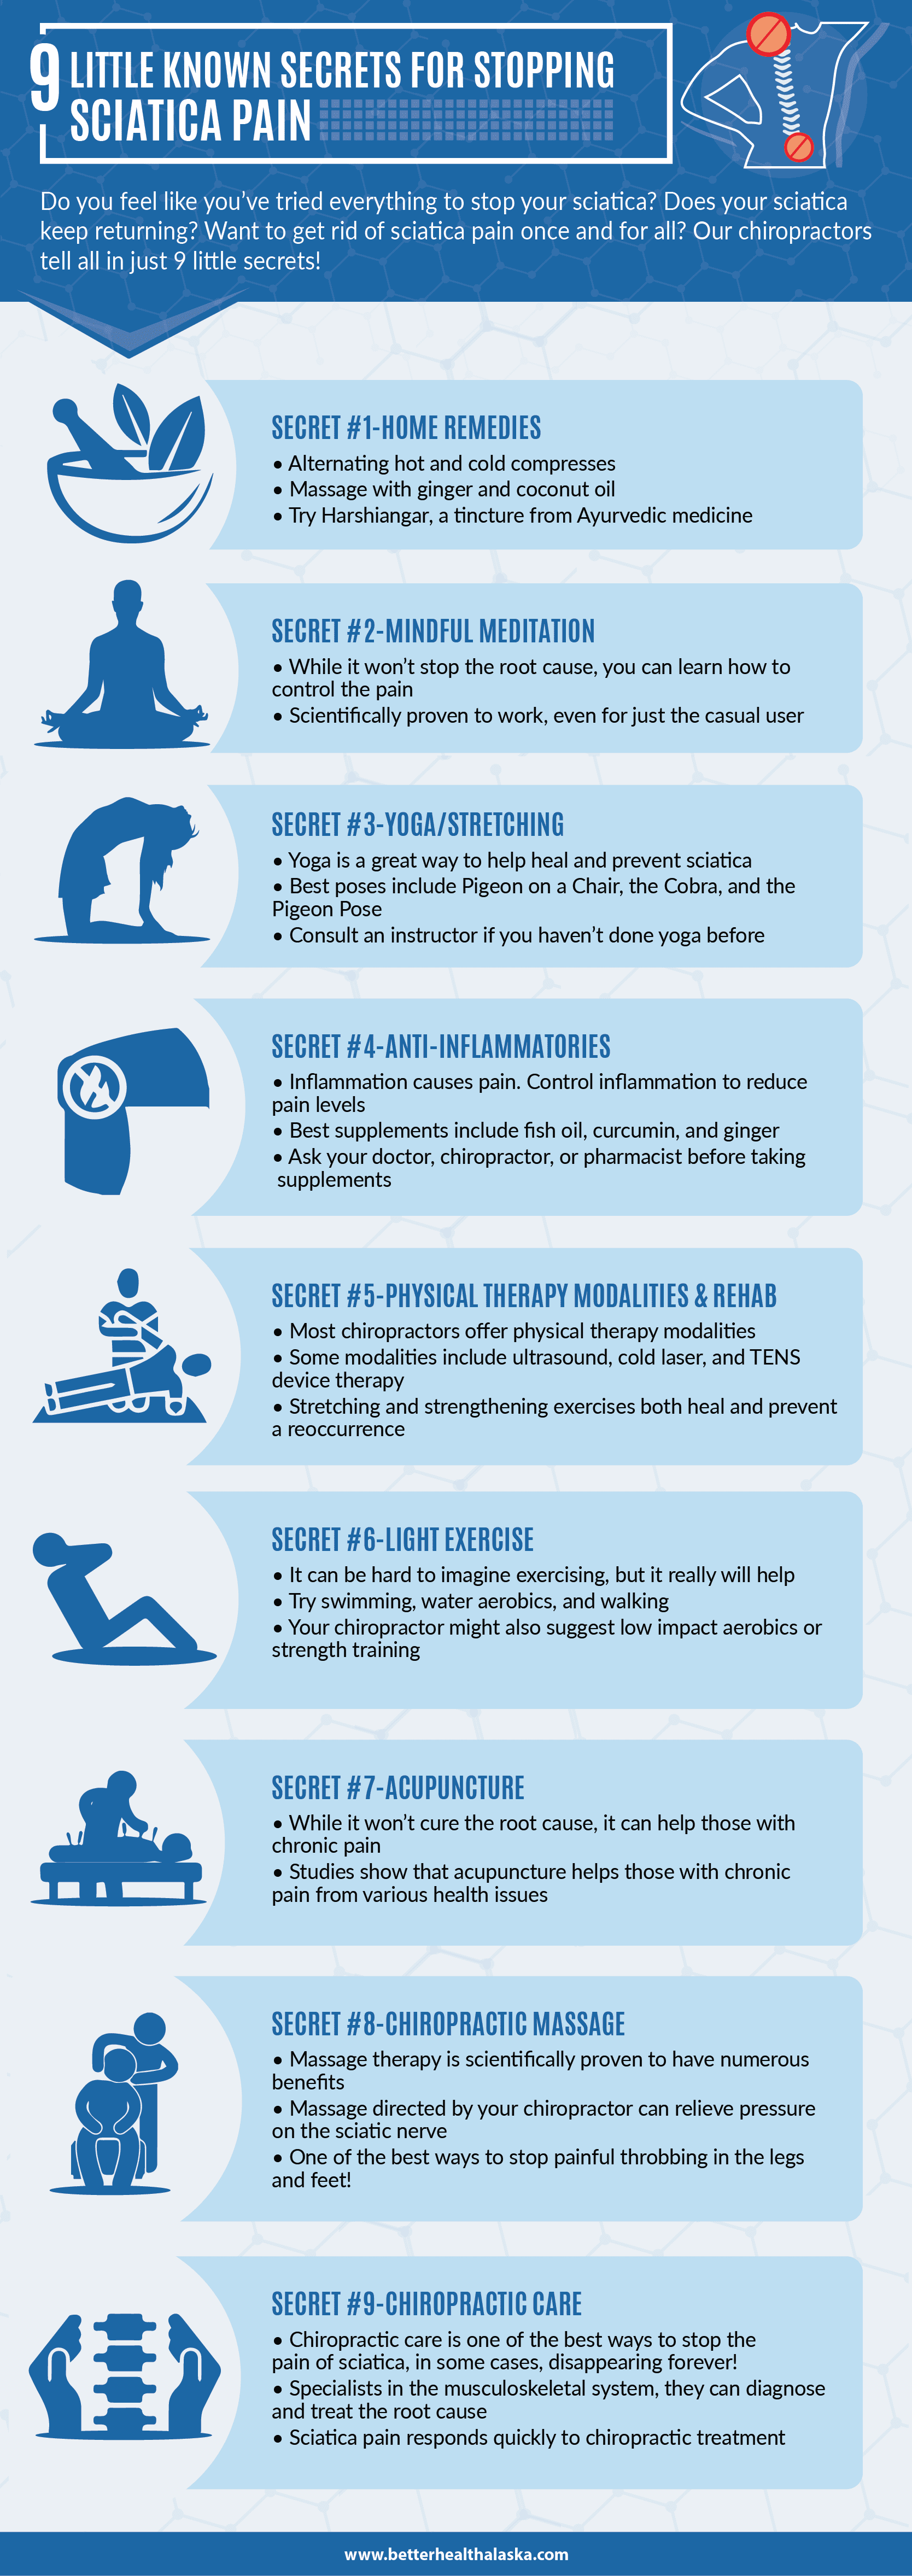 9 Little Known Secrets for Stopping Sciatica Pain infographic